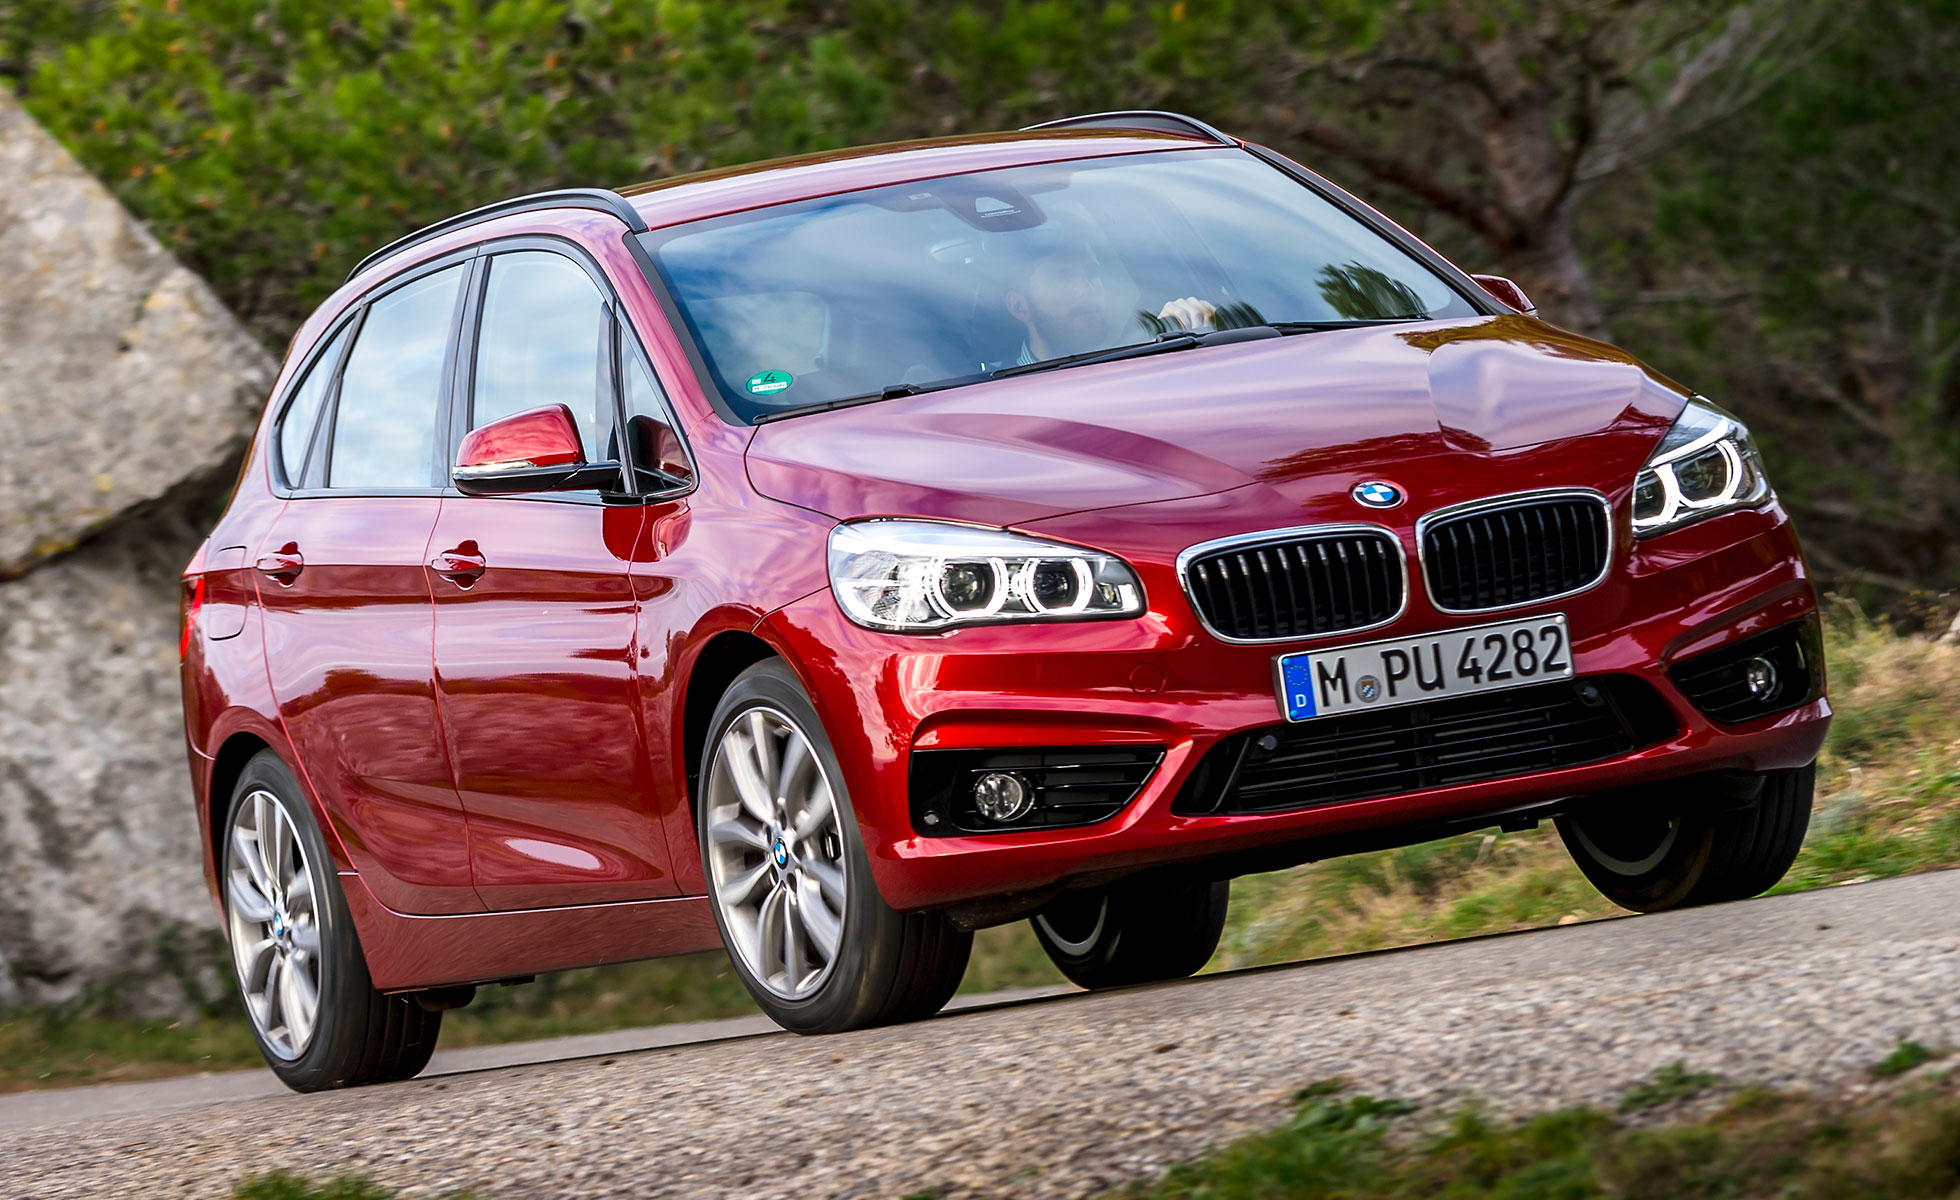 bmw 2 series active tourer xdrive 2015 first drive review motoring research. Black Bedroom Furniture Sets. Home Design Ideas